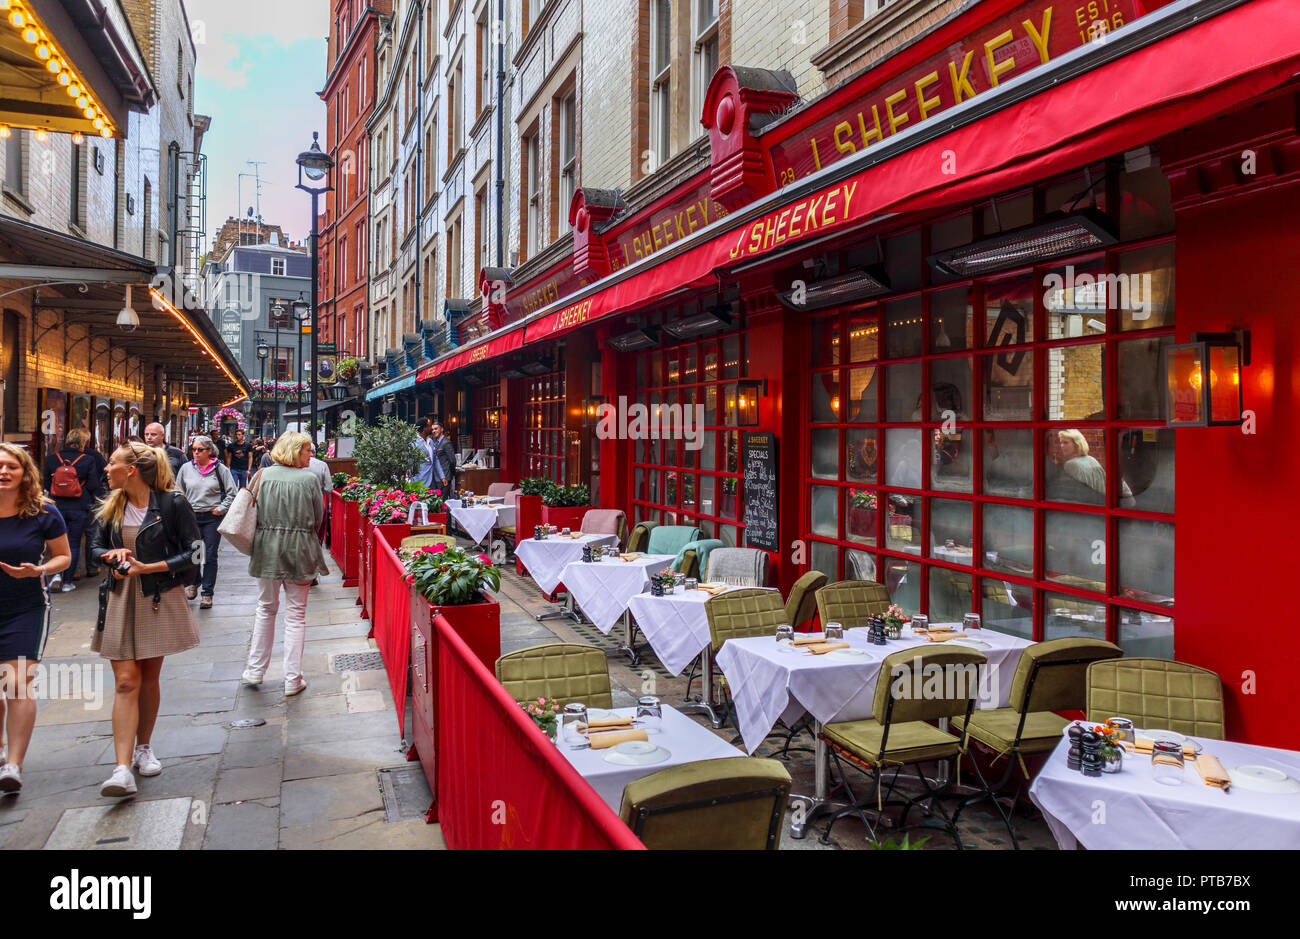 Exterior of the famous up market J. Sheekey seafood restaurant in St Martin's Court in the heart of Theatreland, Covent Garden, West End of London - Stock Image